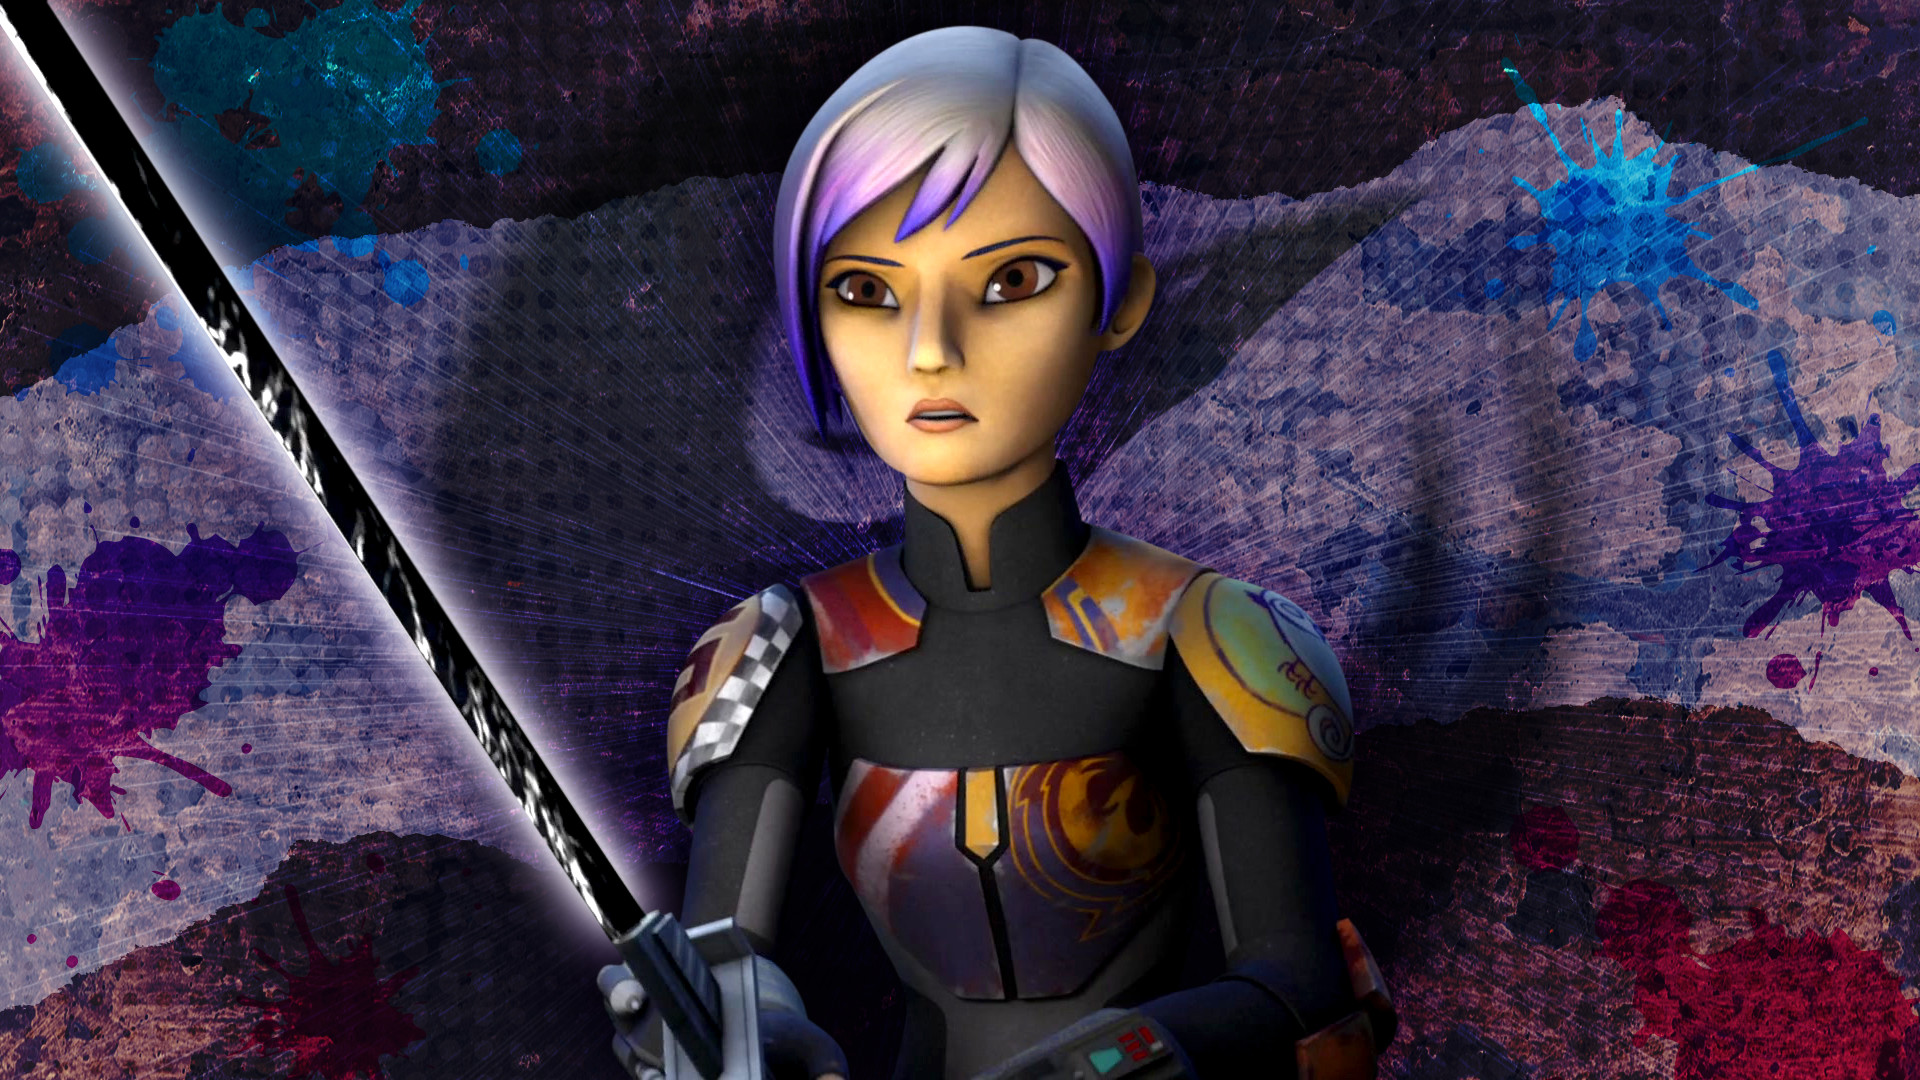 Star Wars Rebels HD Wallpapers (84+ images) - photo#25